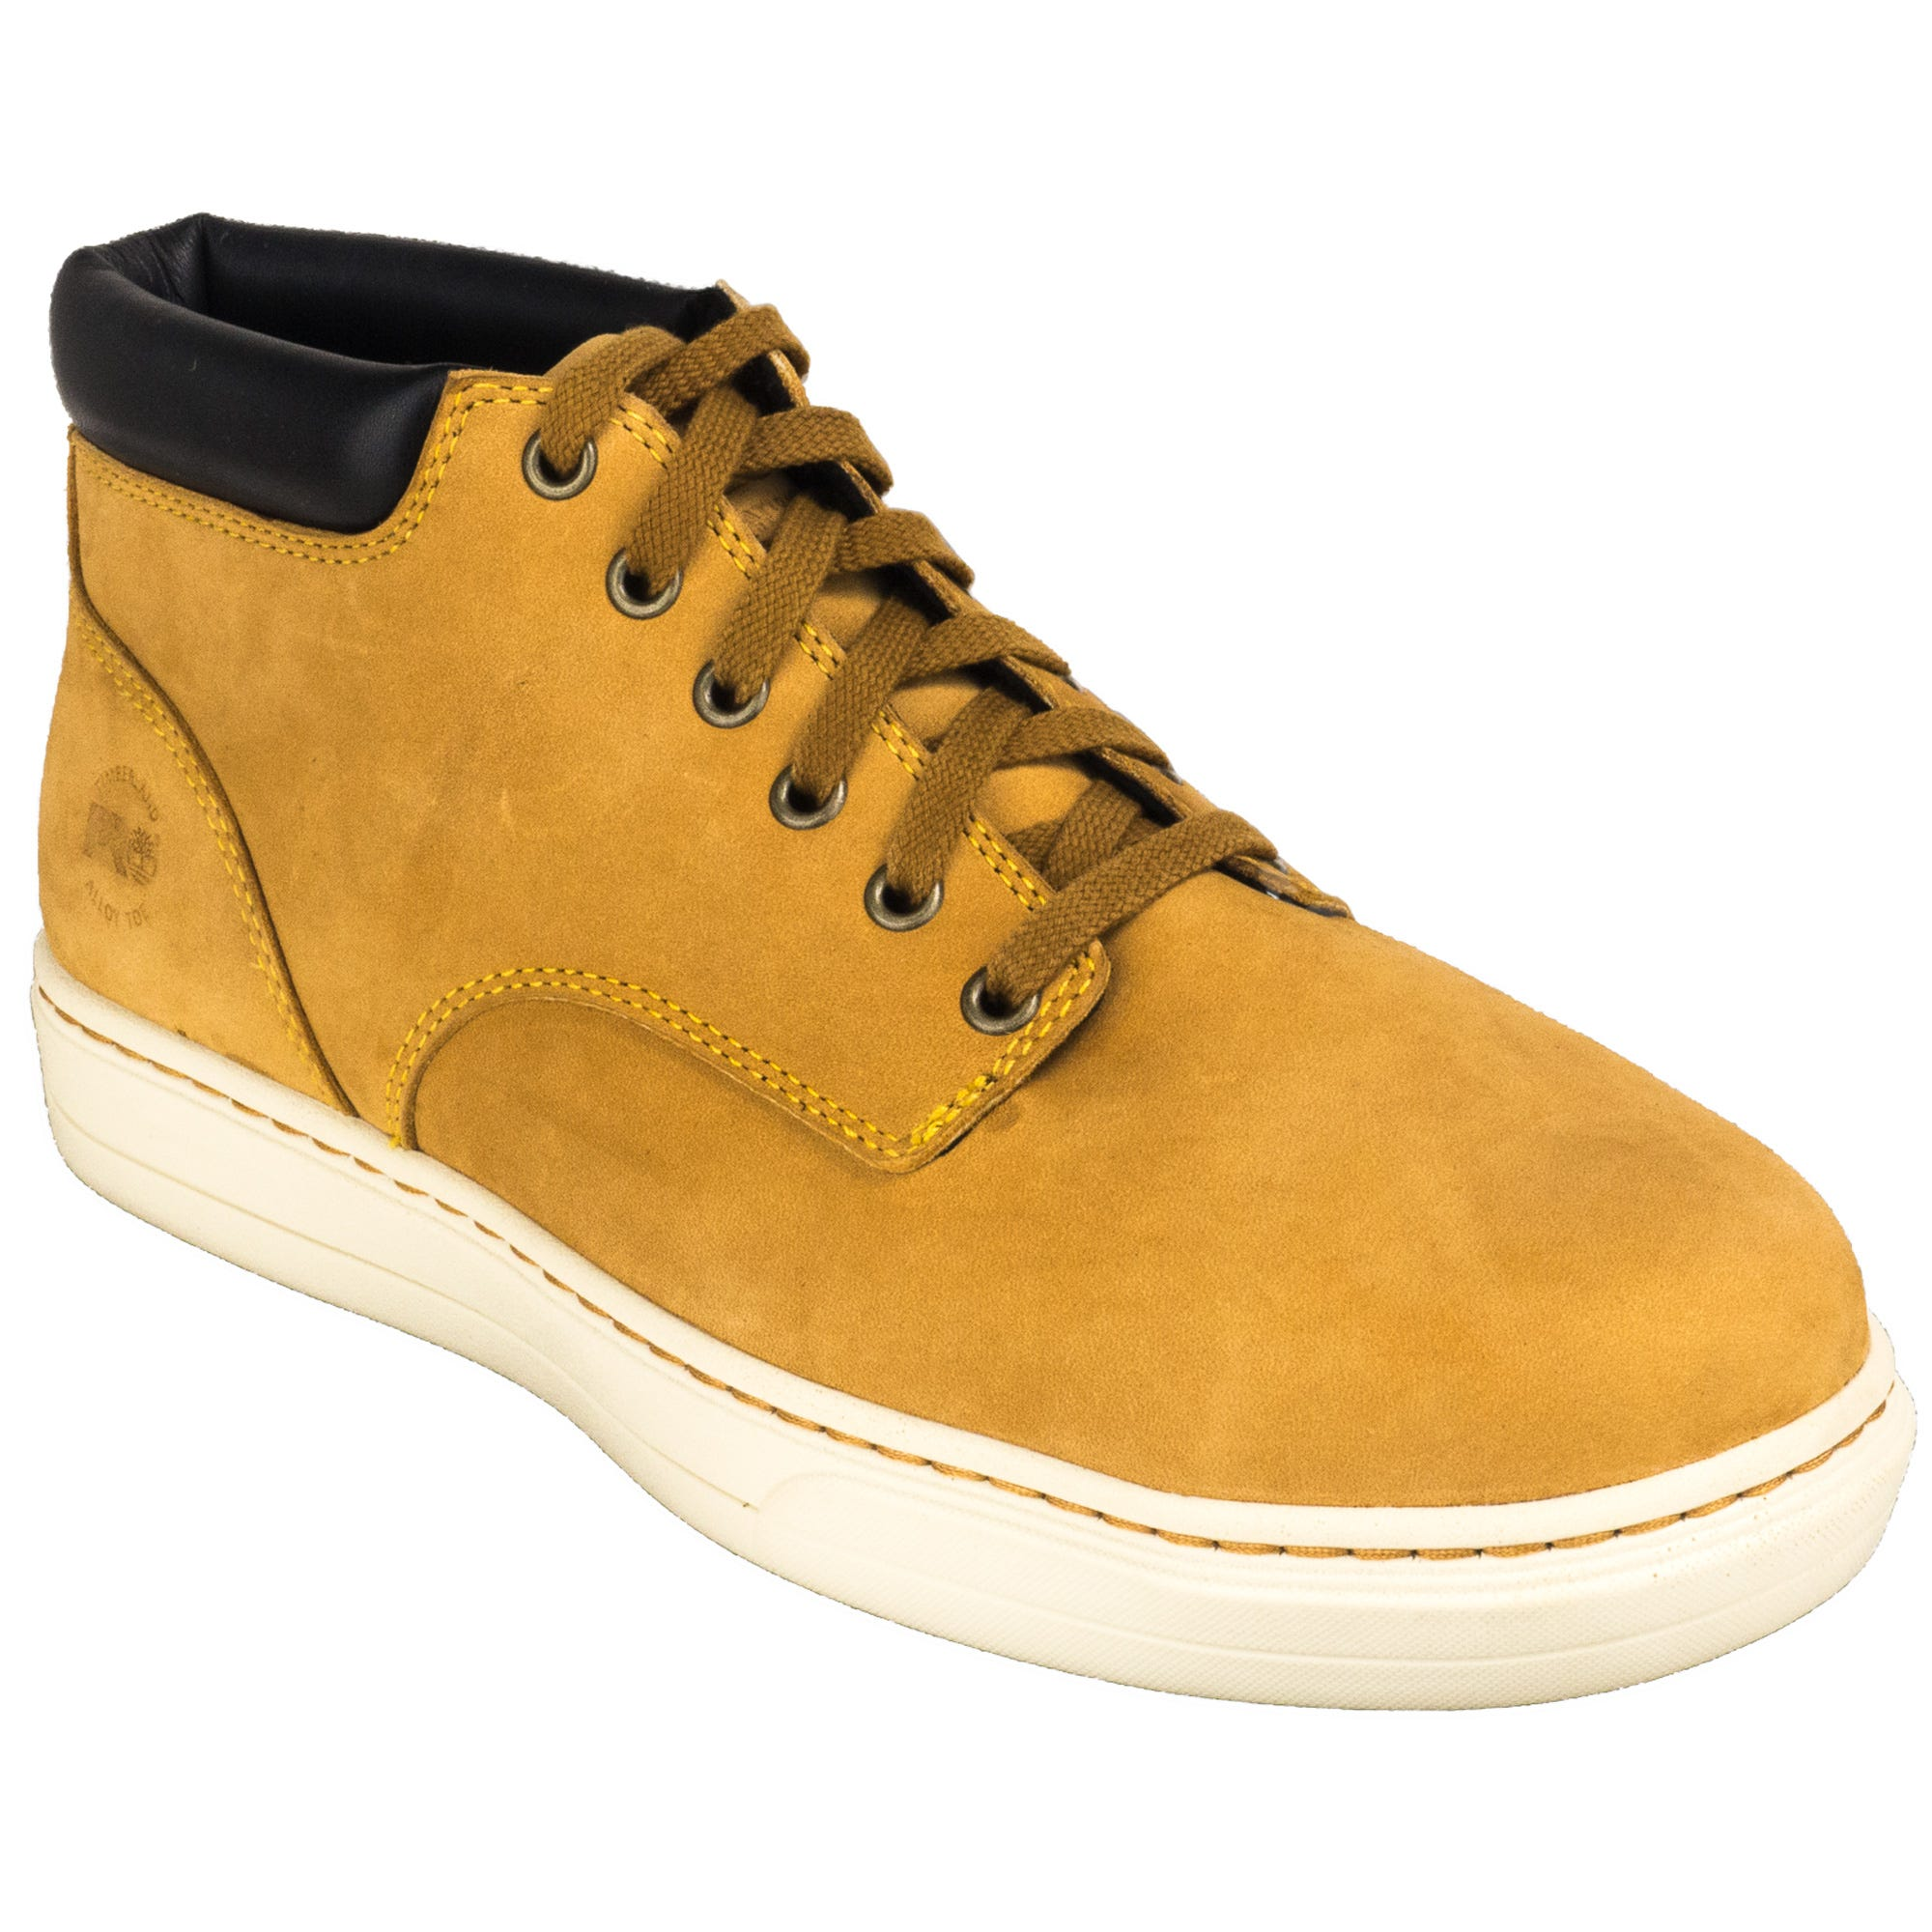 Timberland PRO Alloy Toe TB0A1BAK 231 Men's EH Wheat Disruptor Work Shoes